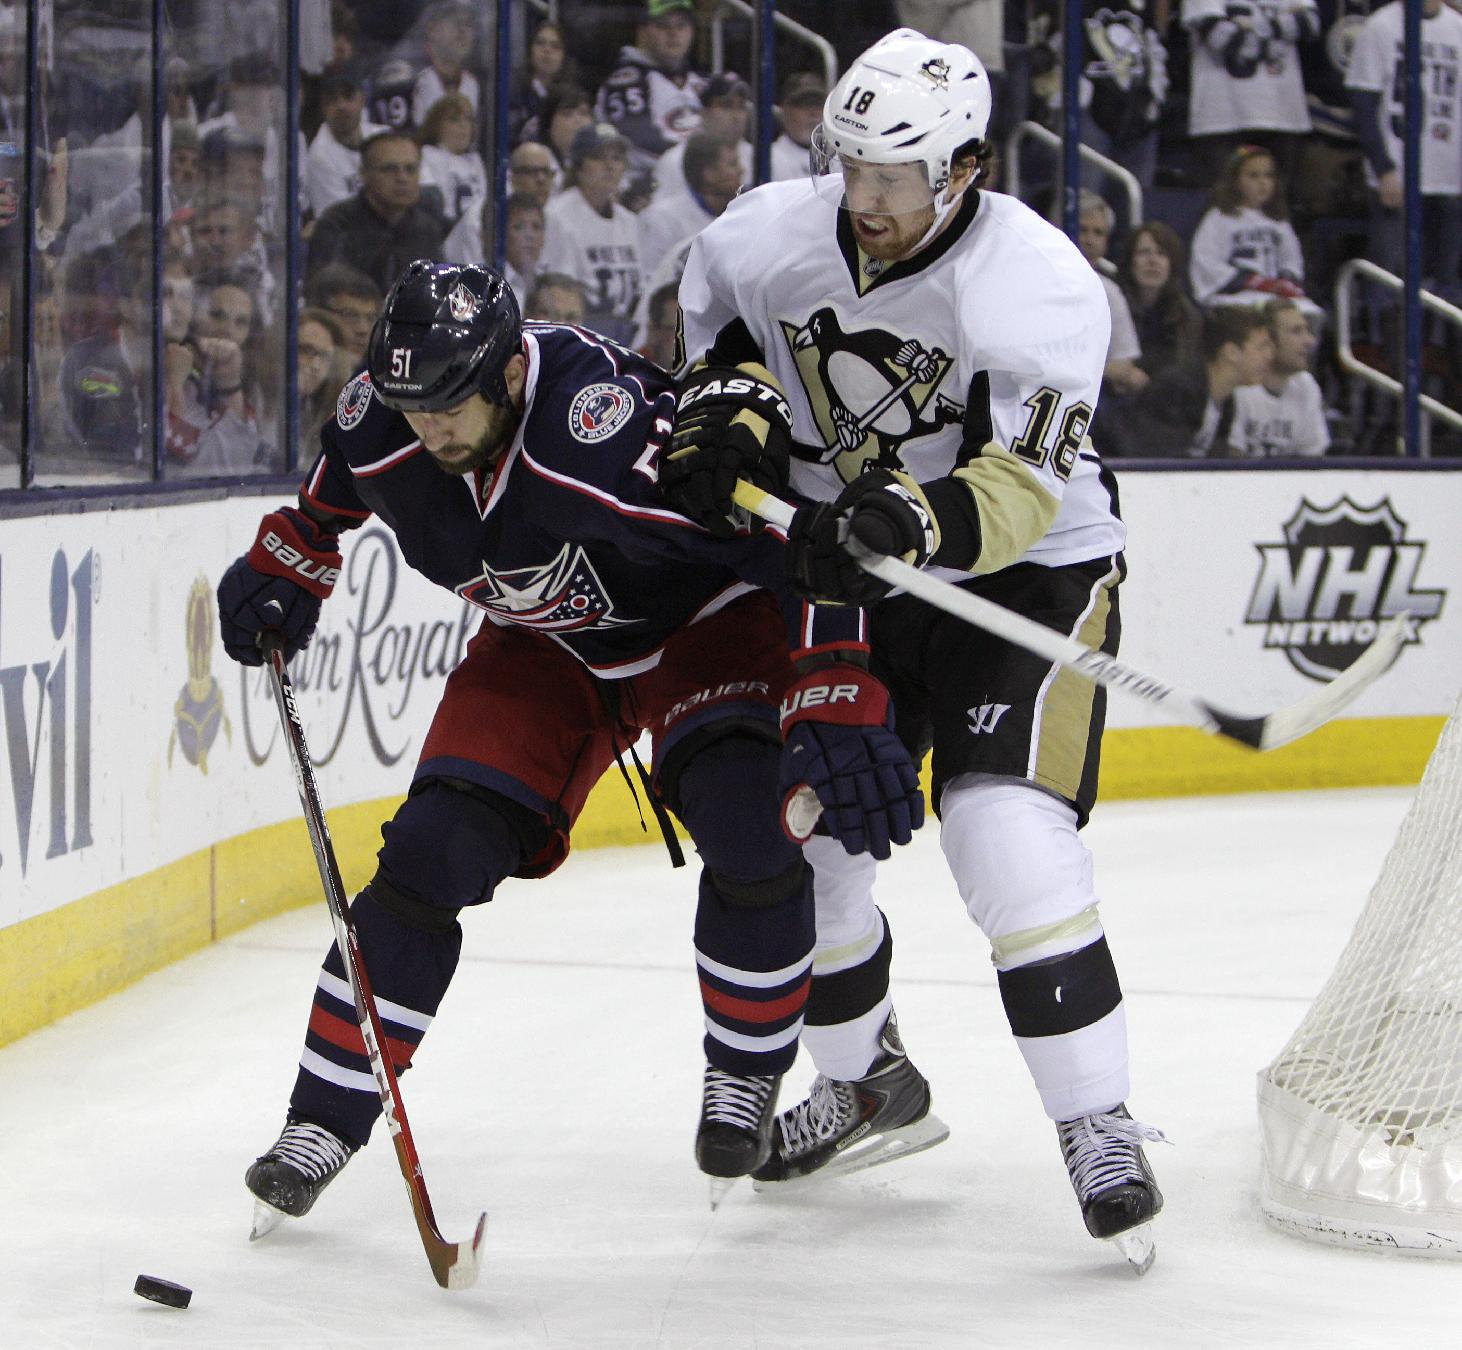 Pens advance after wild series vs Blue Jackets